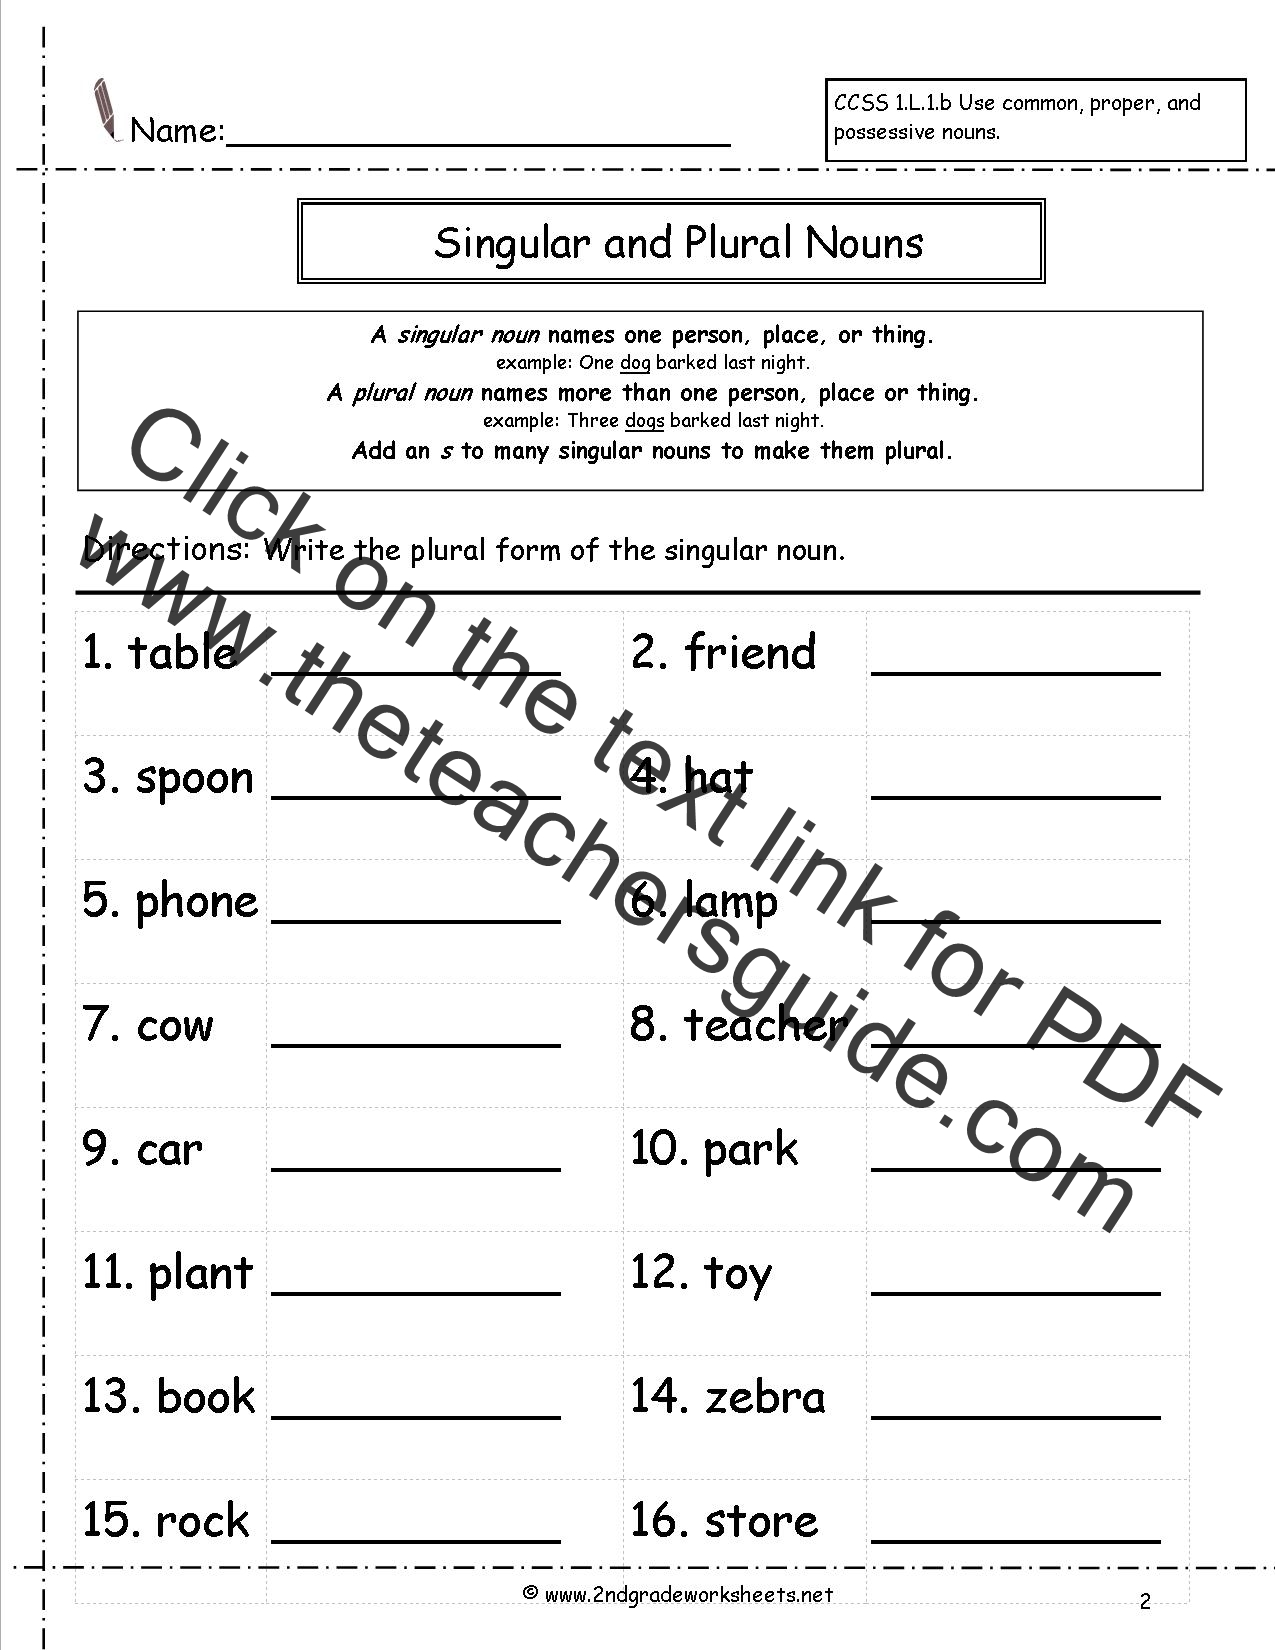 Singular and Plural Nouns Worksheets – Irregular Plural Nouns Worksheet